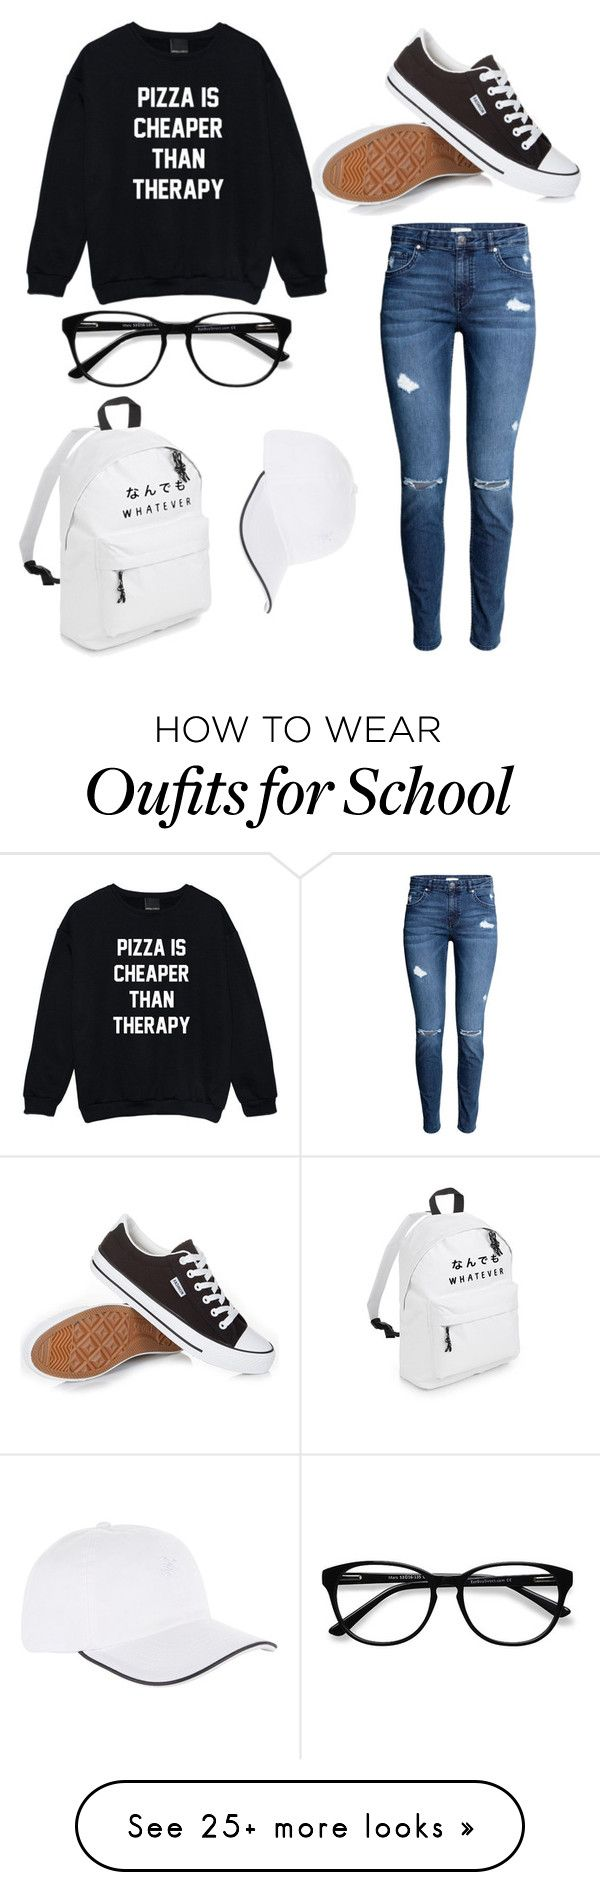 Fashion For A Friend By Neviehr Diokno Penus On Polyvore Featuring Eyebuydirect